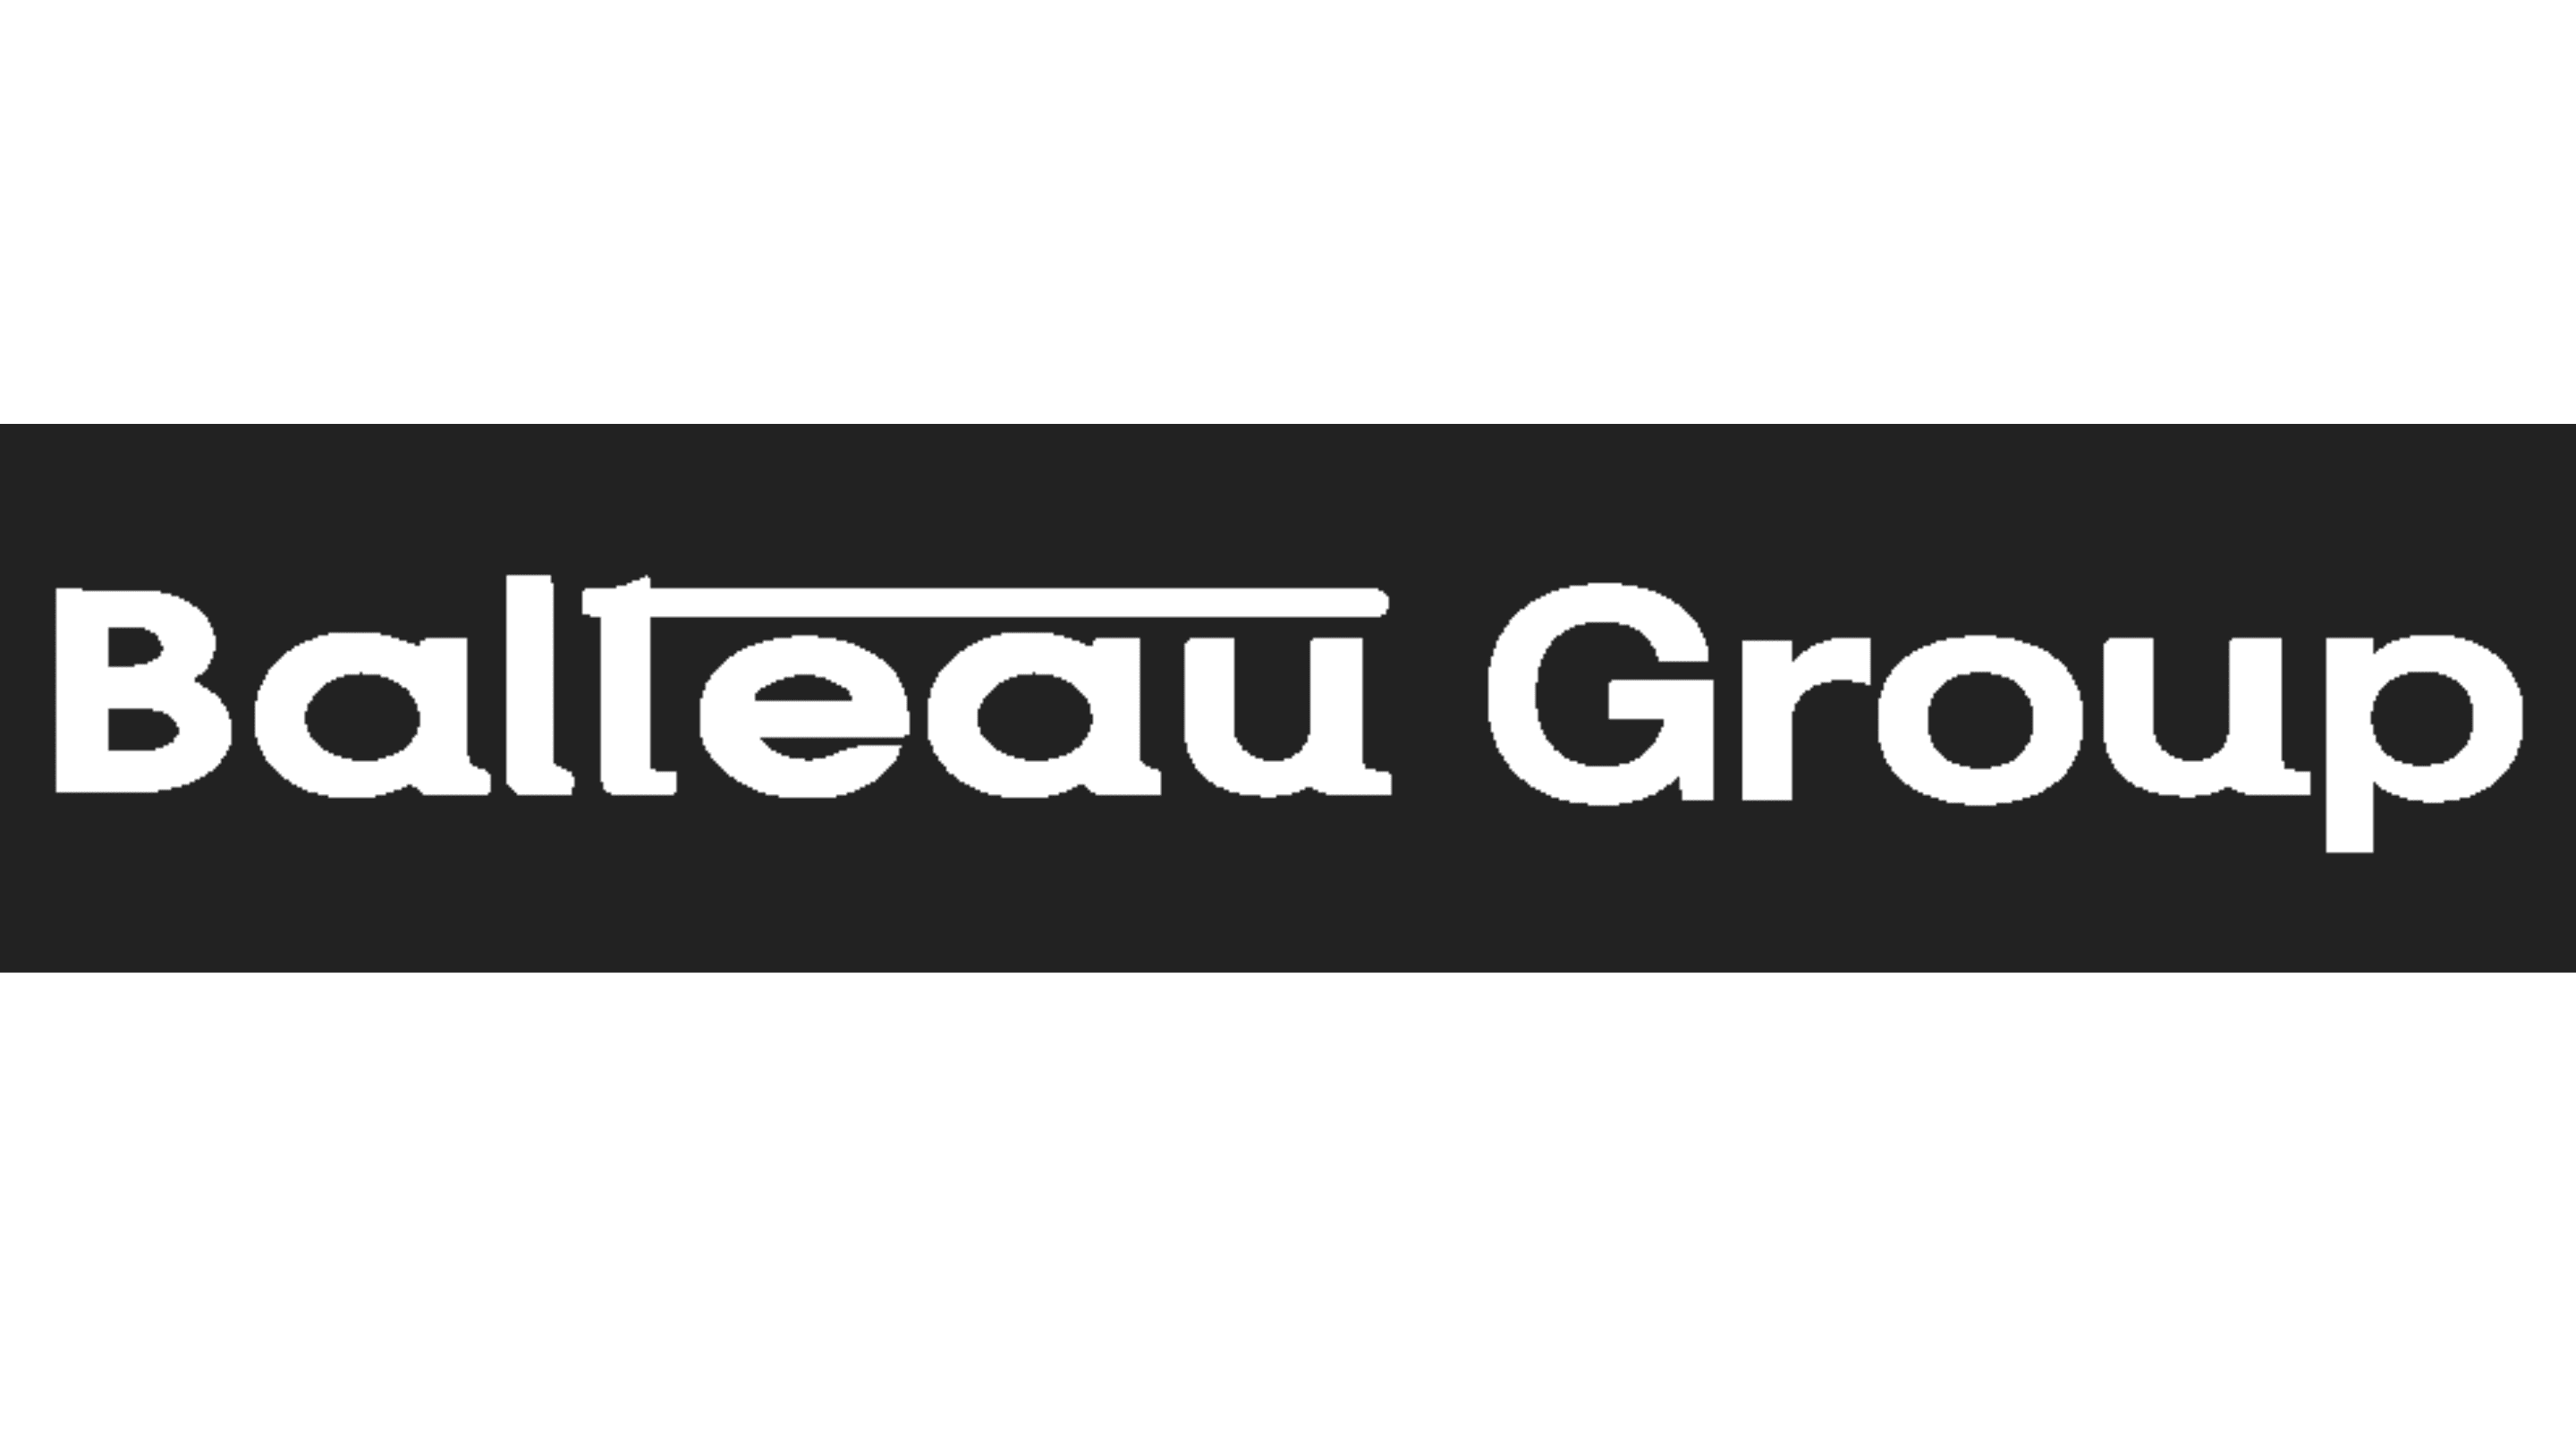 Balteau Group logo